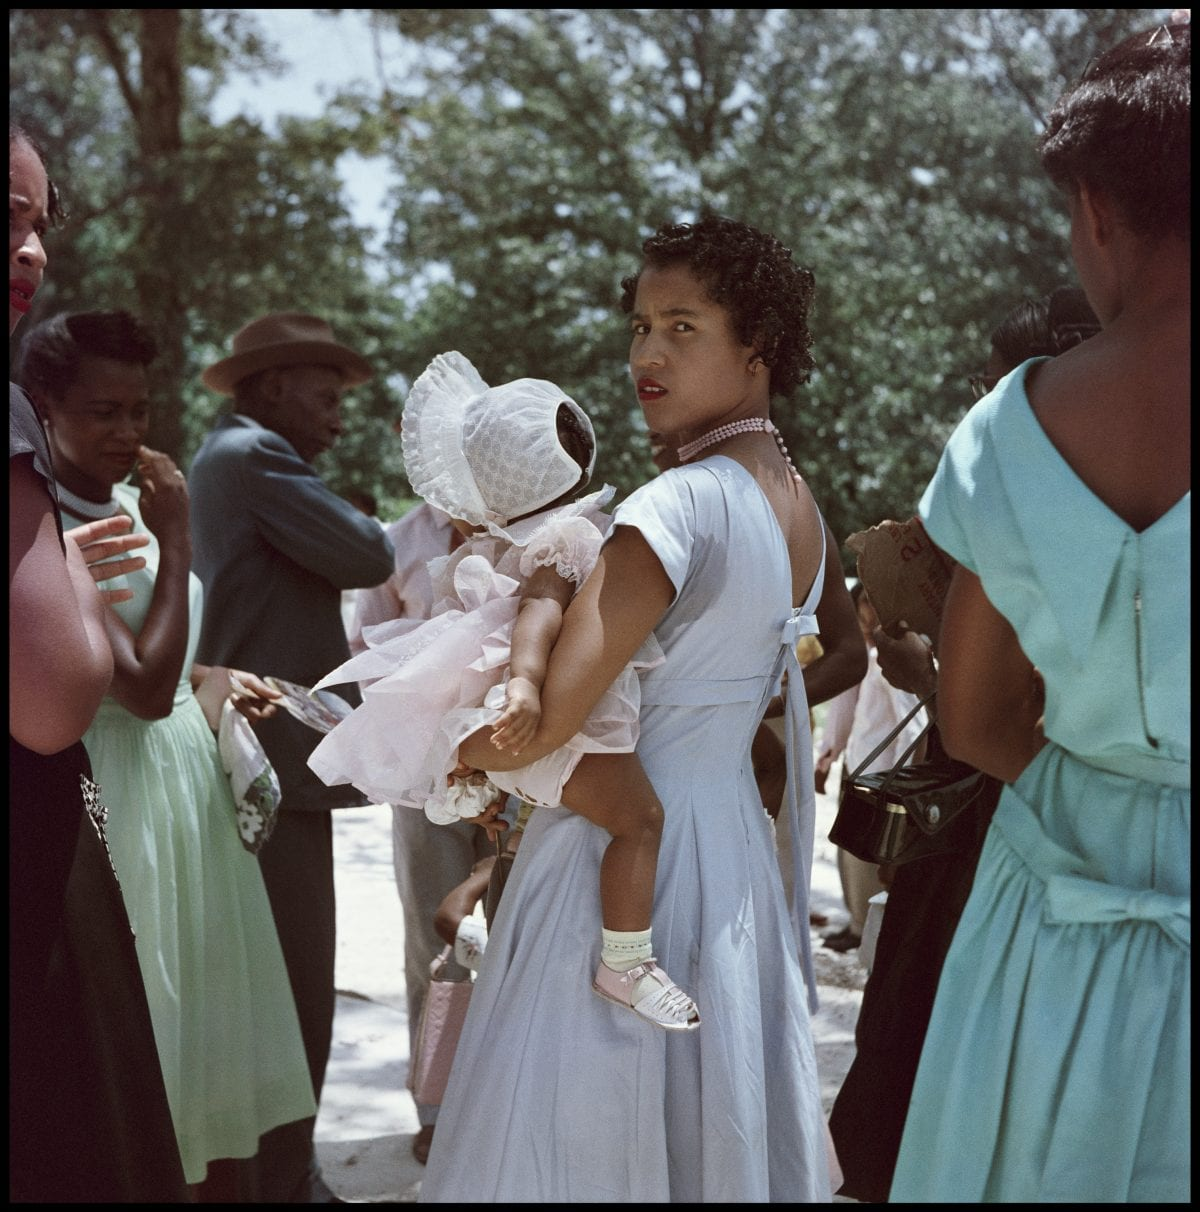 Gordon Parks (American, 1912–2006), Untitled, Shady Grove, Alabama, 1956, courtesy of and copyright The Gordon Parks Foundation.